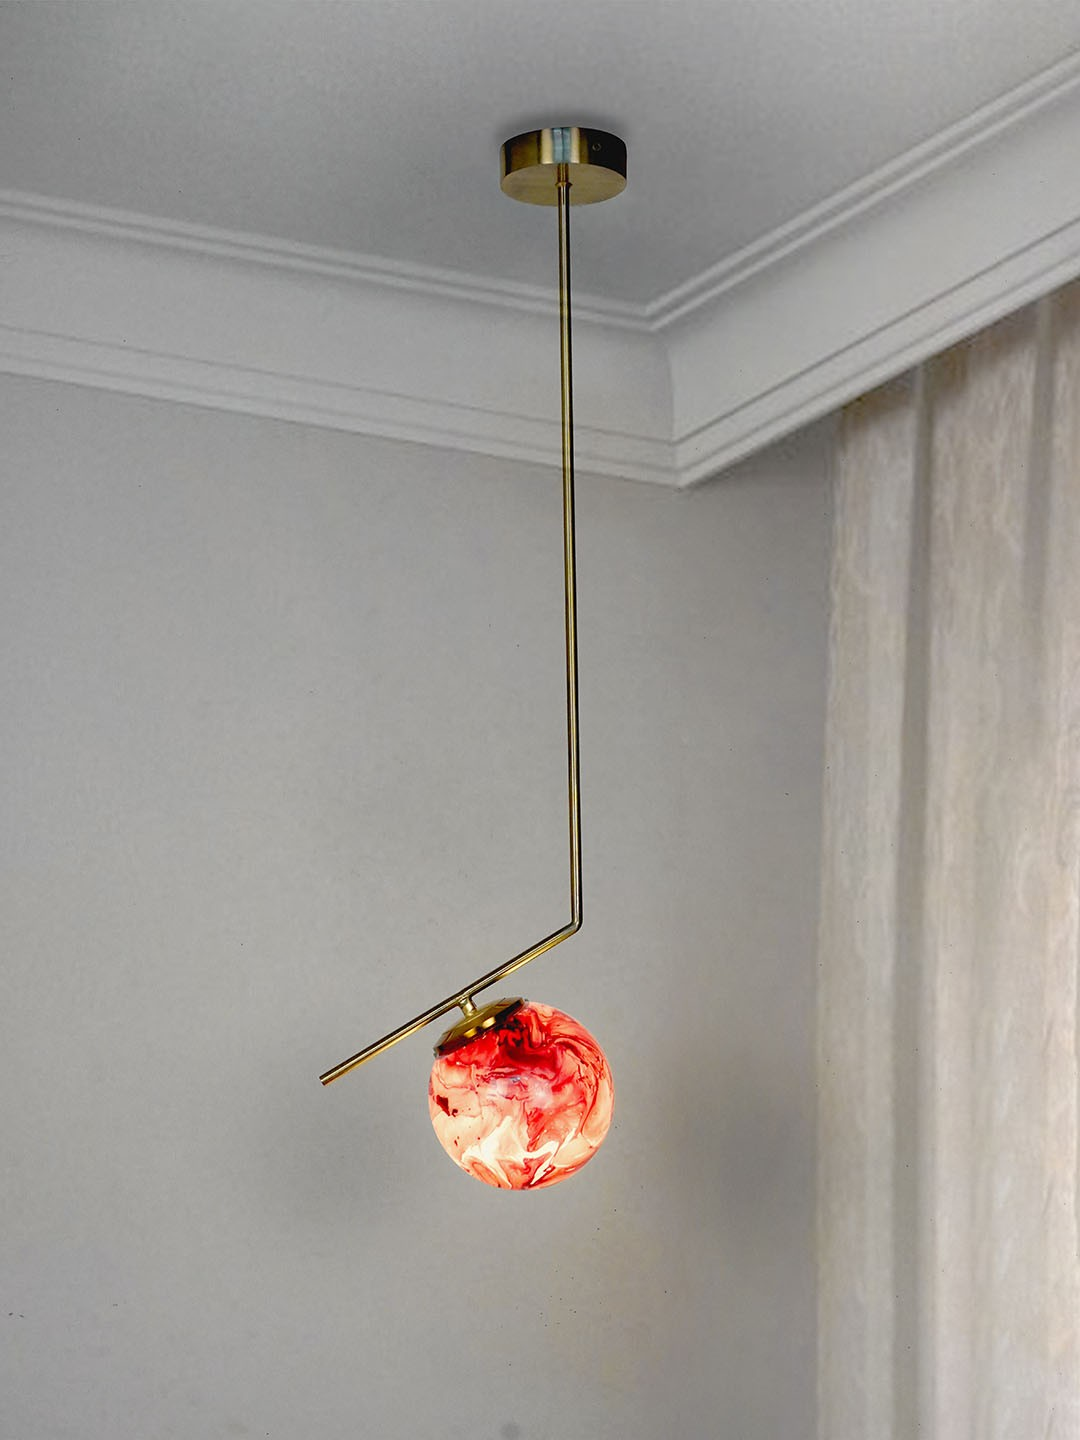 Mid Century Modern Steel Tangent Ceiling Light in Matt Gold Finish and Red Marble Glass Globe